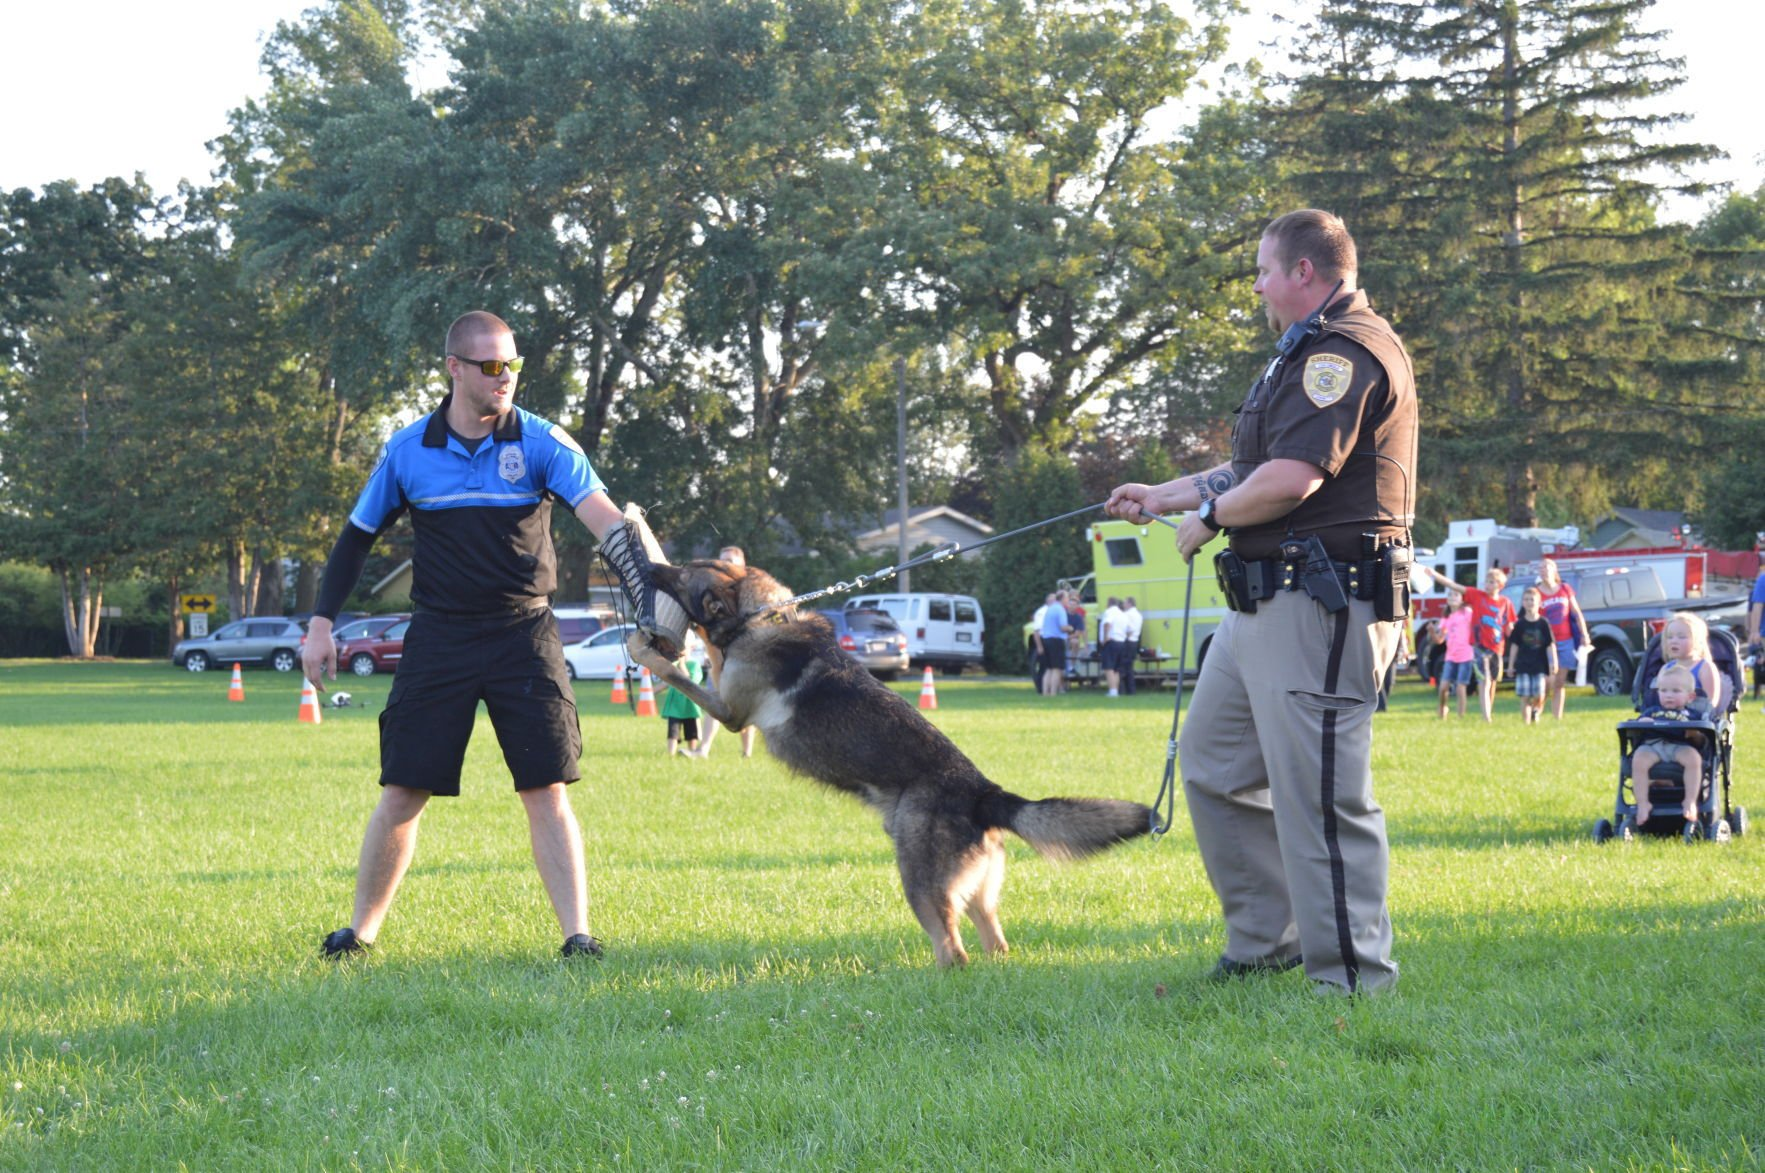 National Night Out brings crime prevention awareness to Cloverdale